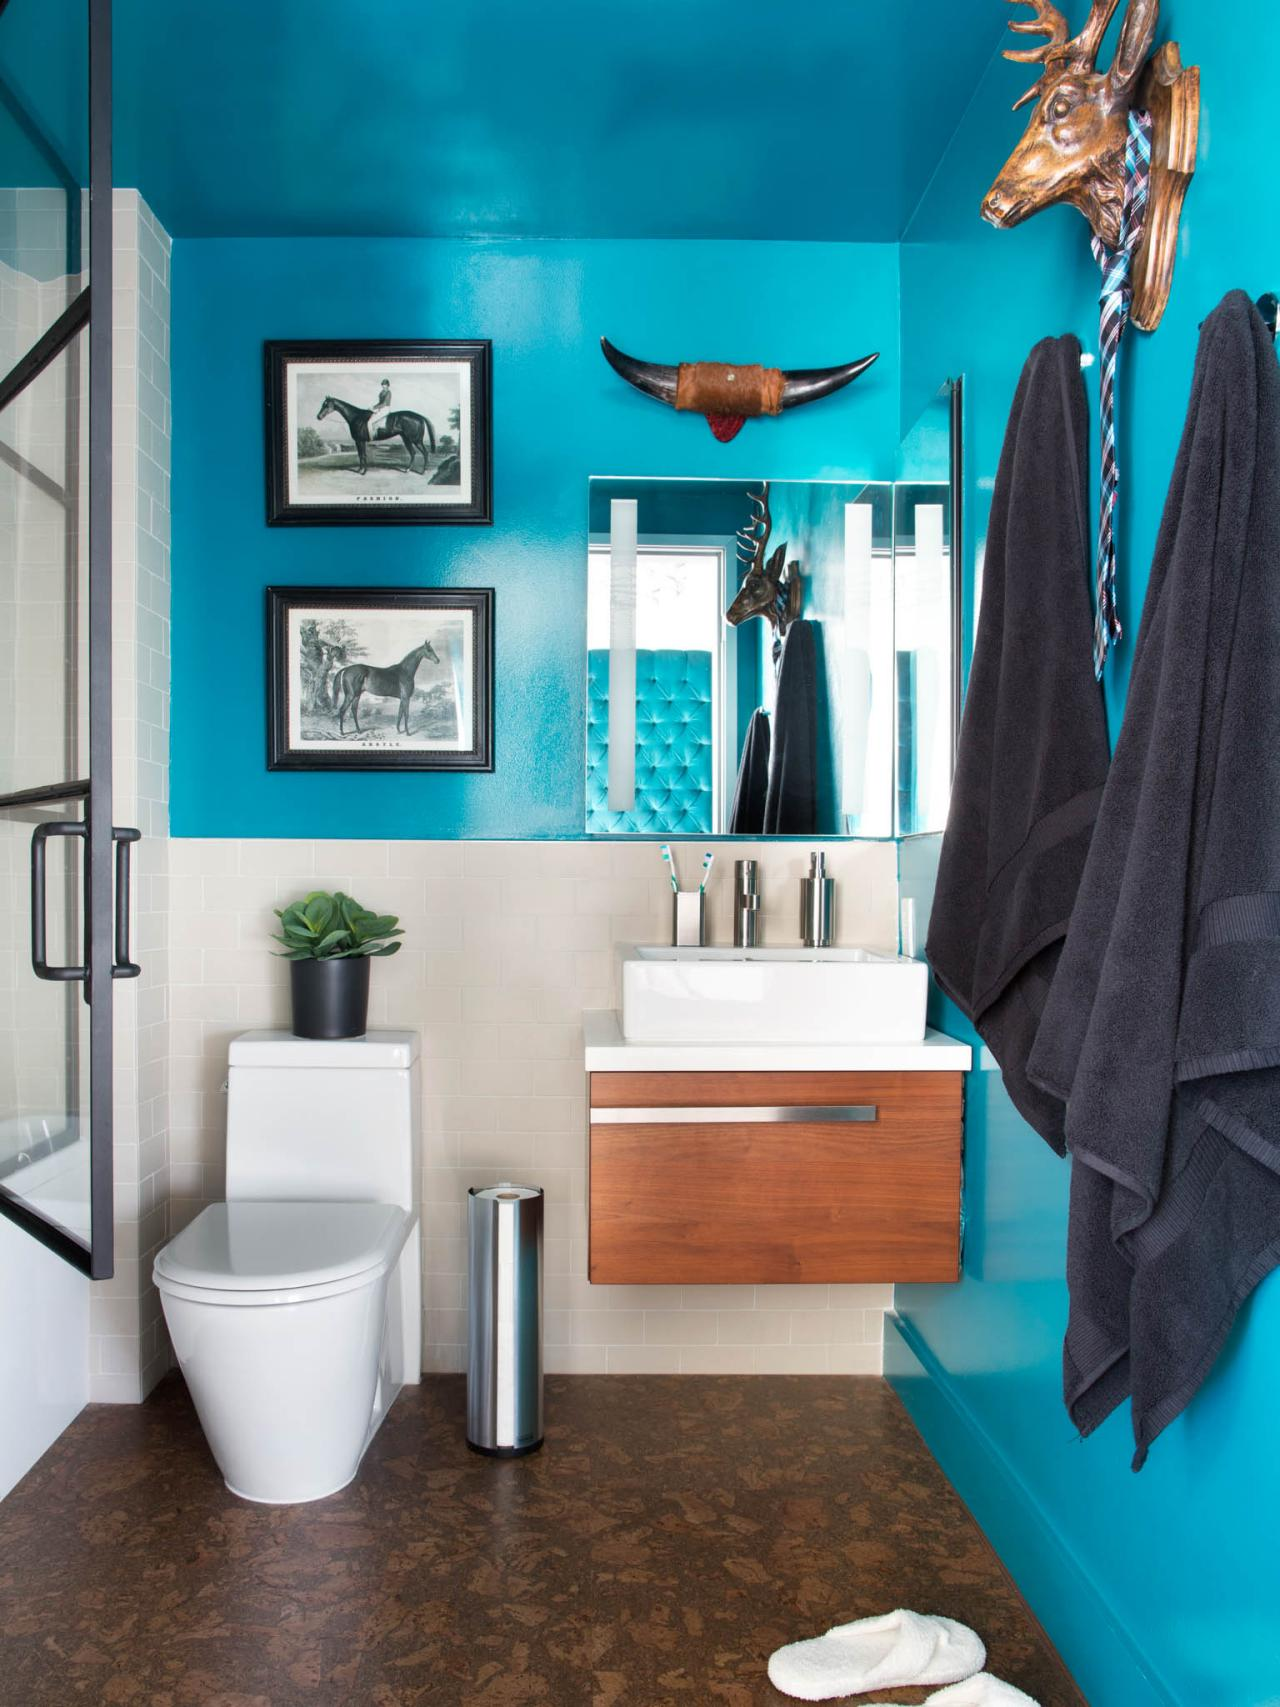 Paint Small Bathroom 10 paint color ideas for small bathrooms | diy network blog: made